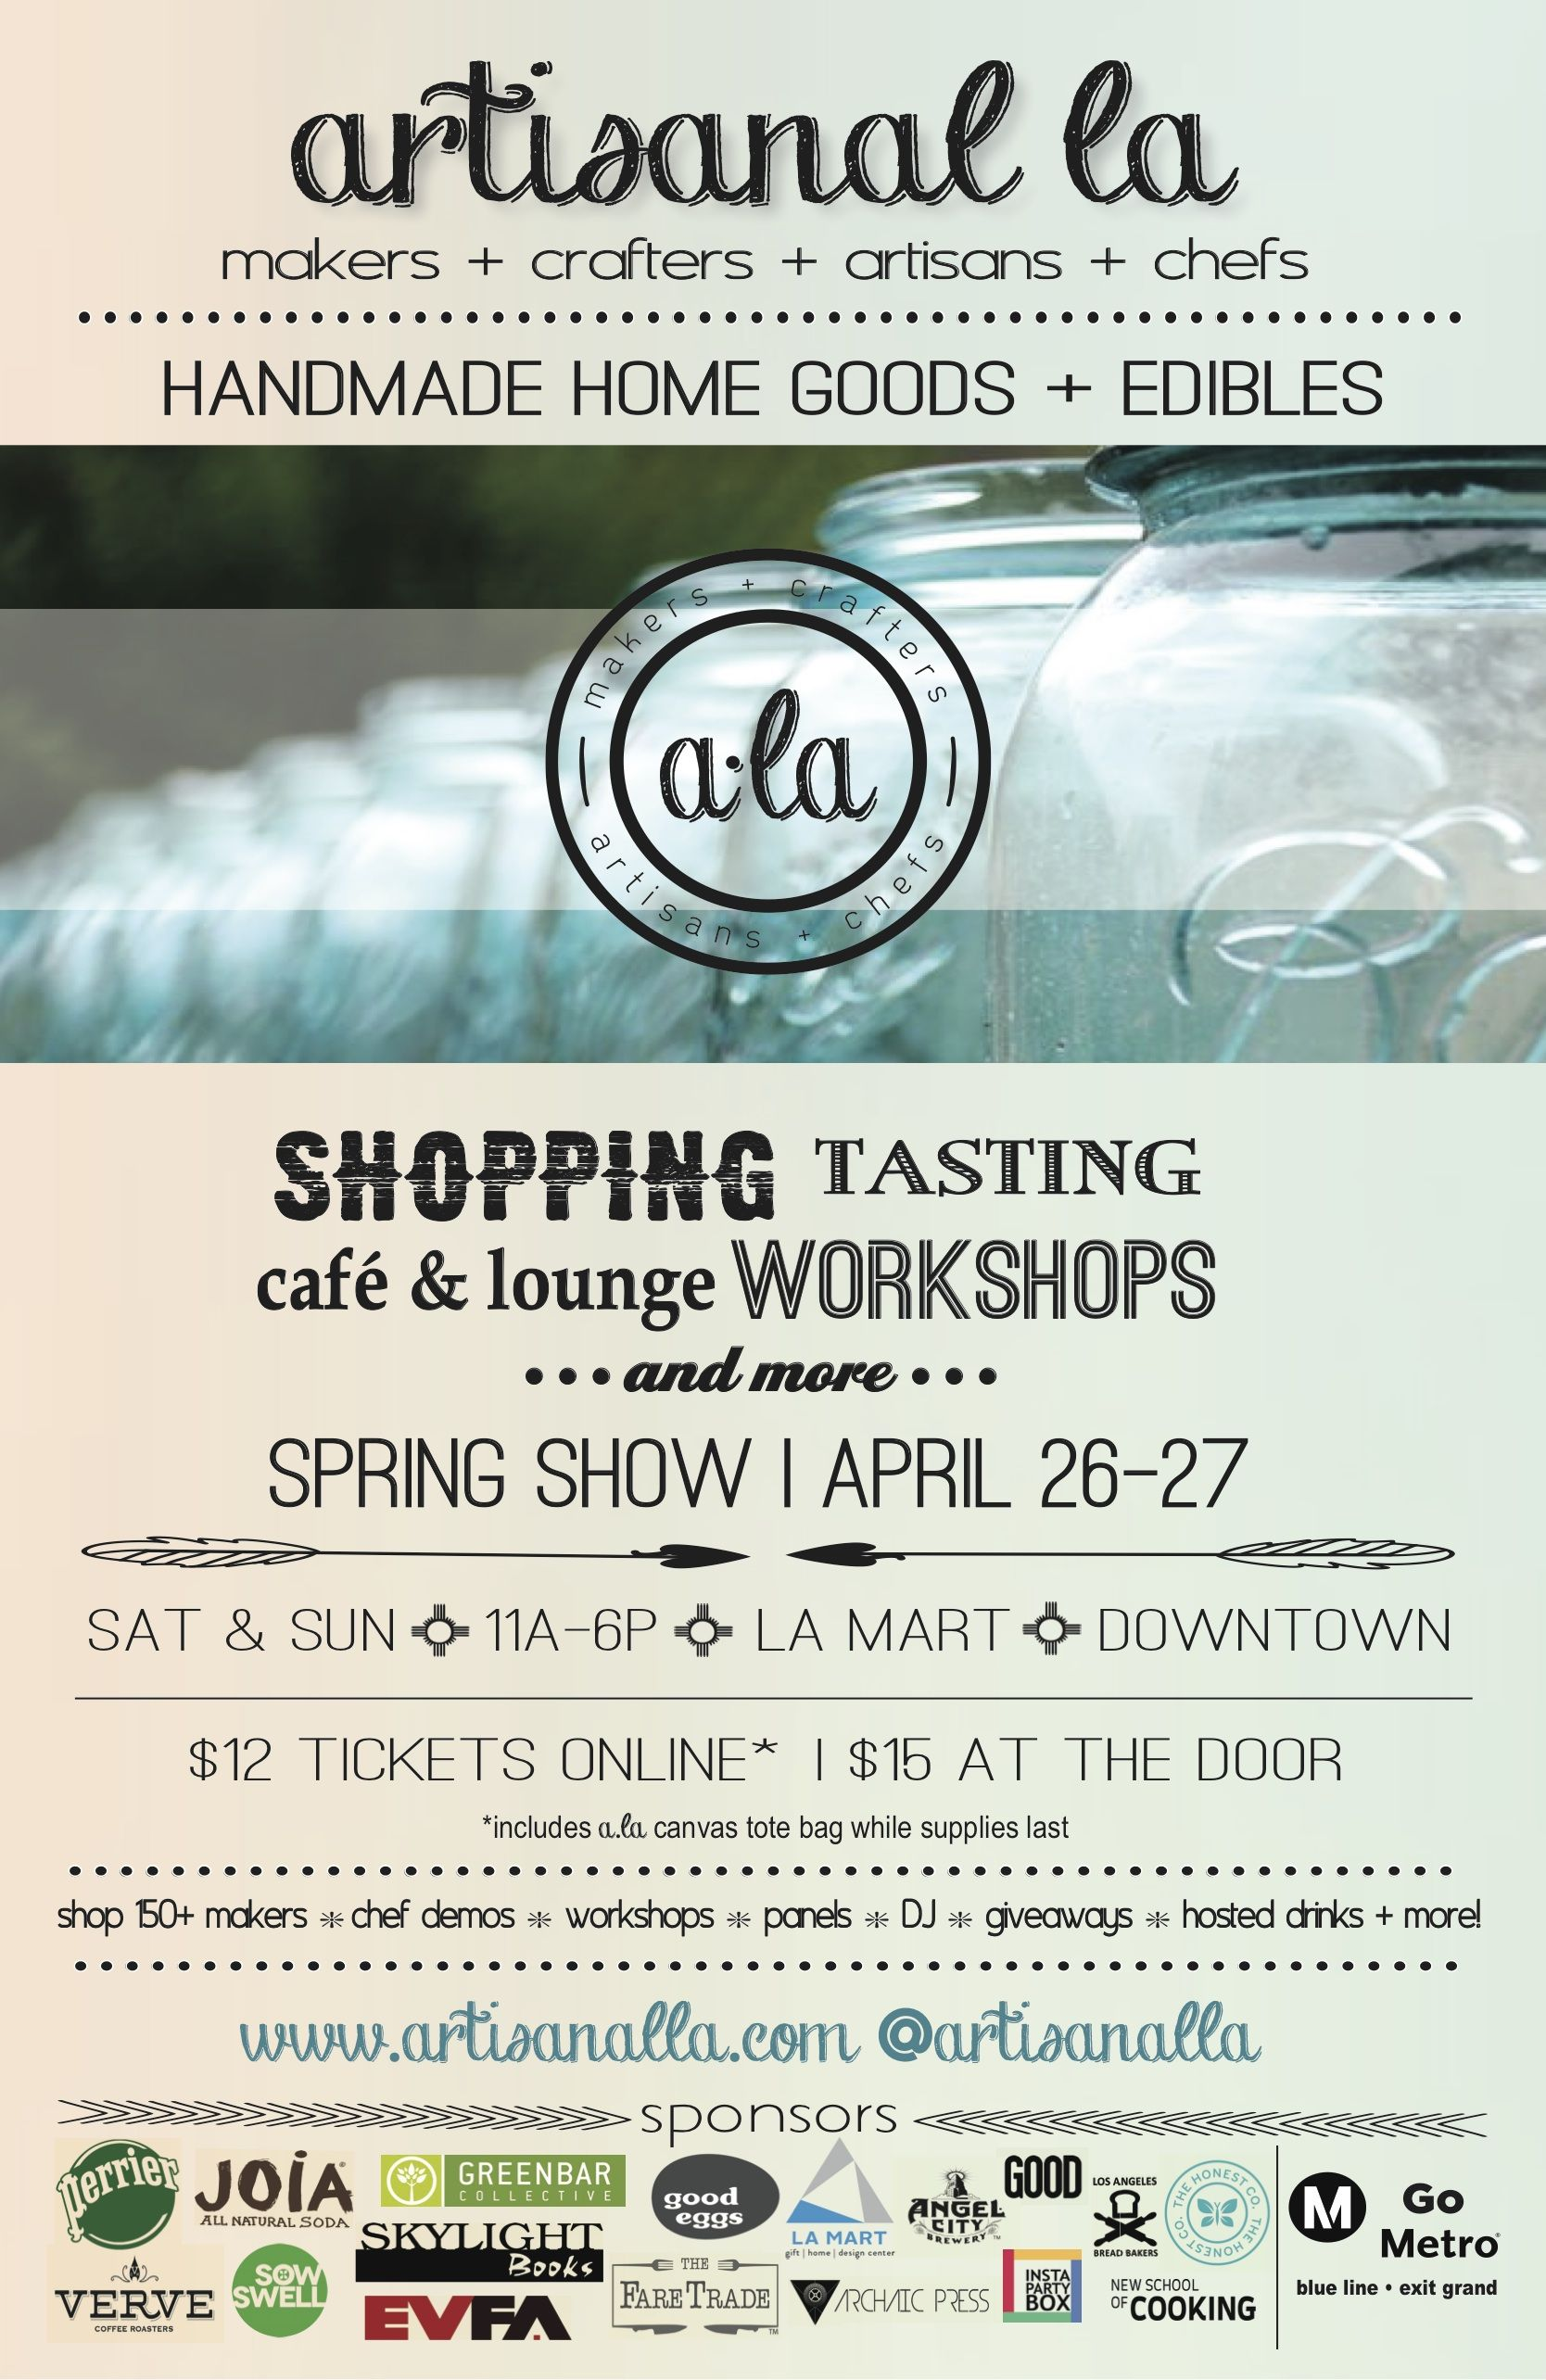 Artisanal LA. Taste, shop, sample and learn while supporting the local economy and local artisanal vendors at our seasonal shows and pop-up shops. Showcases the best artisanal food vendors around the country and the local food scene in LA.